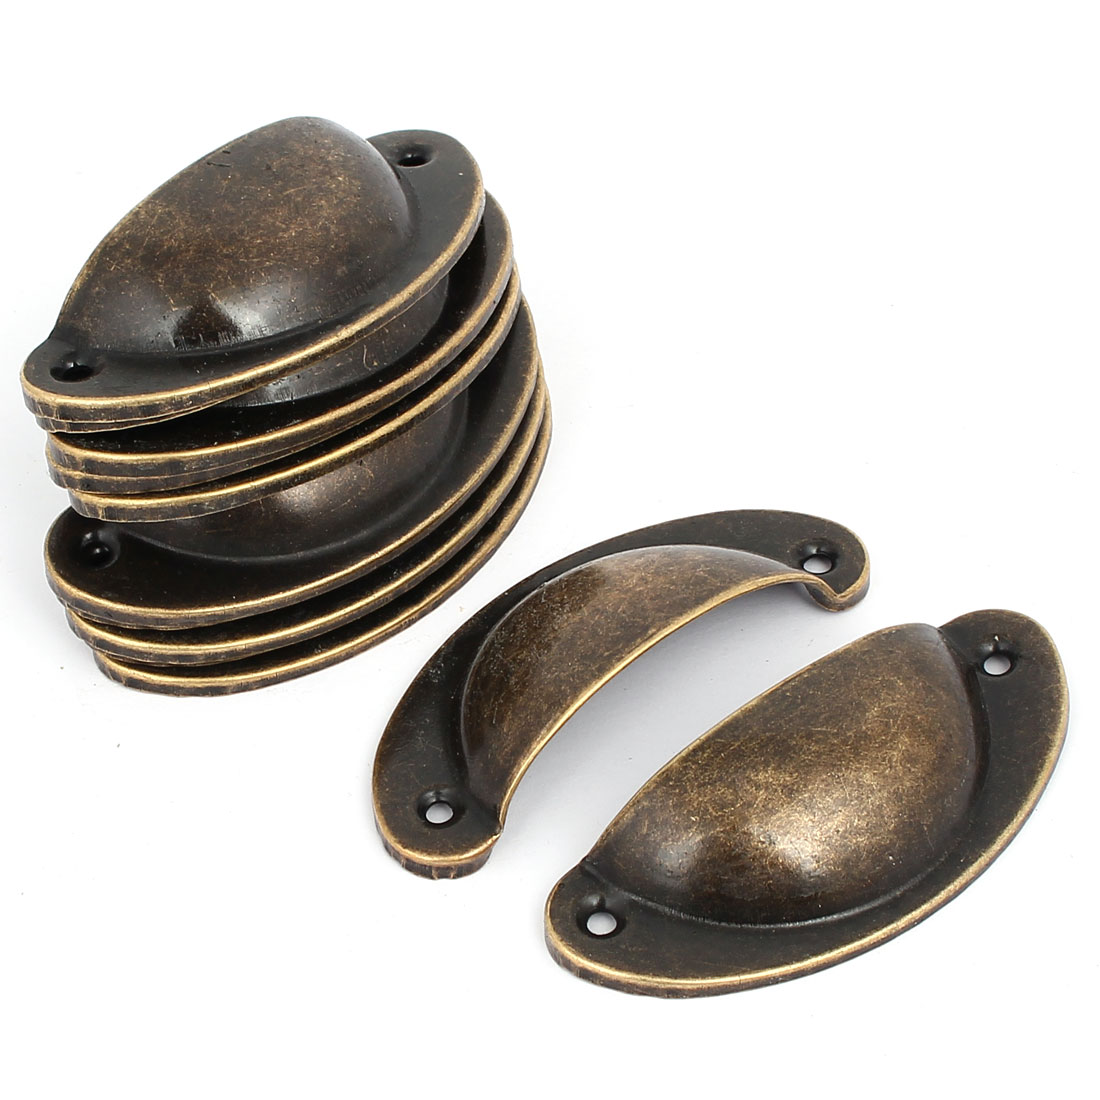 Drawer Iron Antique Style Shell Cup Pull Handles Bronze Tone 81mm Length  12pcs